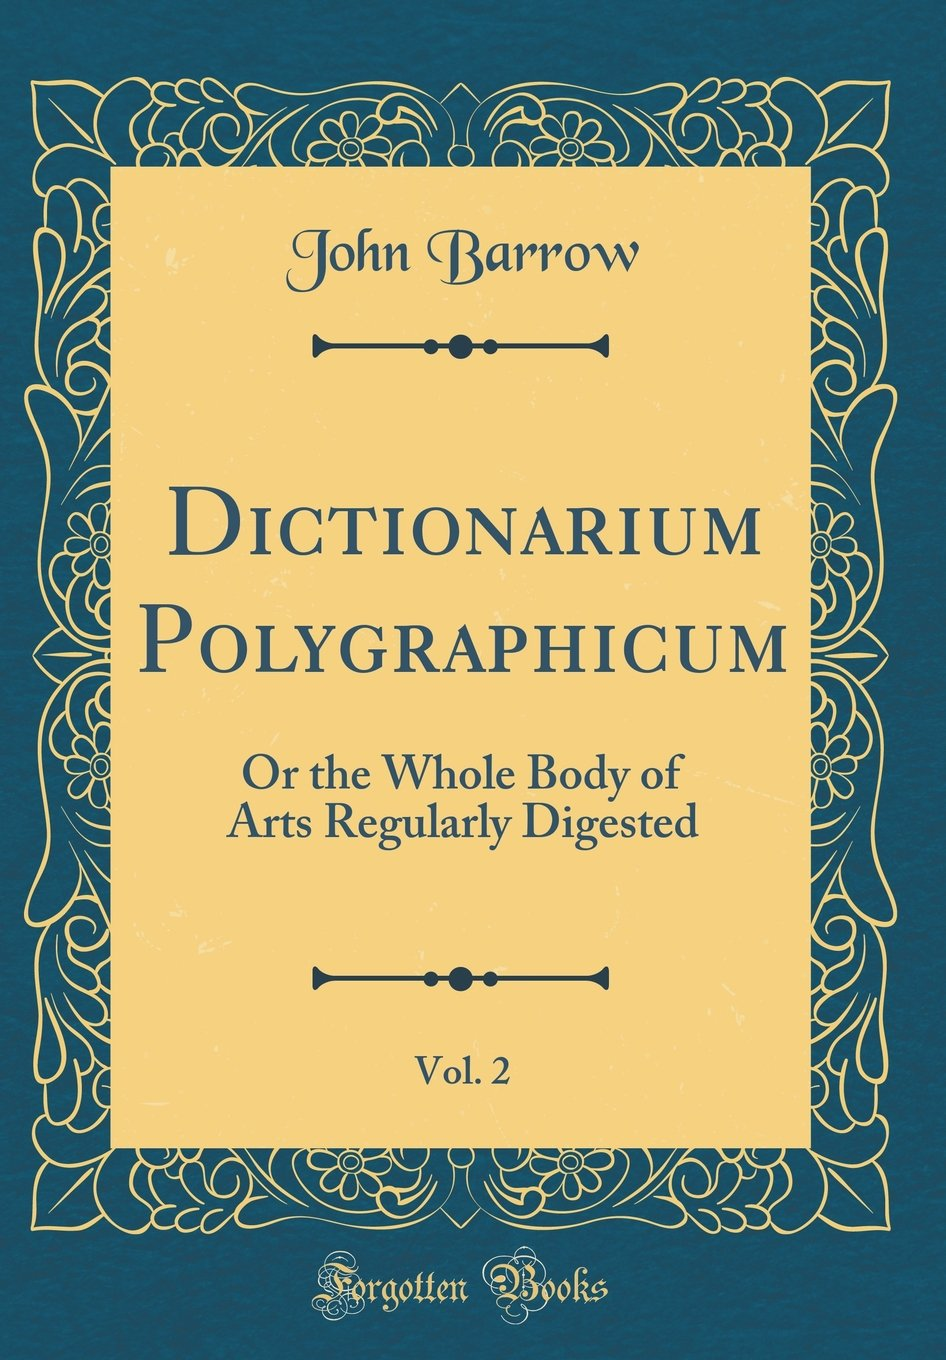 Dictionarium Polygraphicum, Vol. 2: Or the Whole Body of Arts Regularly Digested (Classic Reprint) ebook